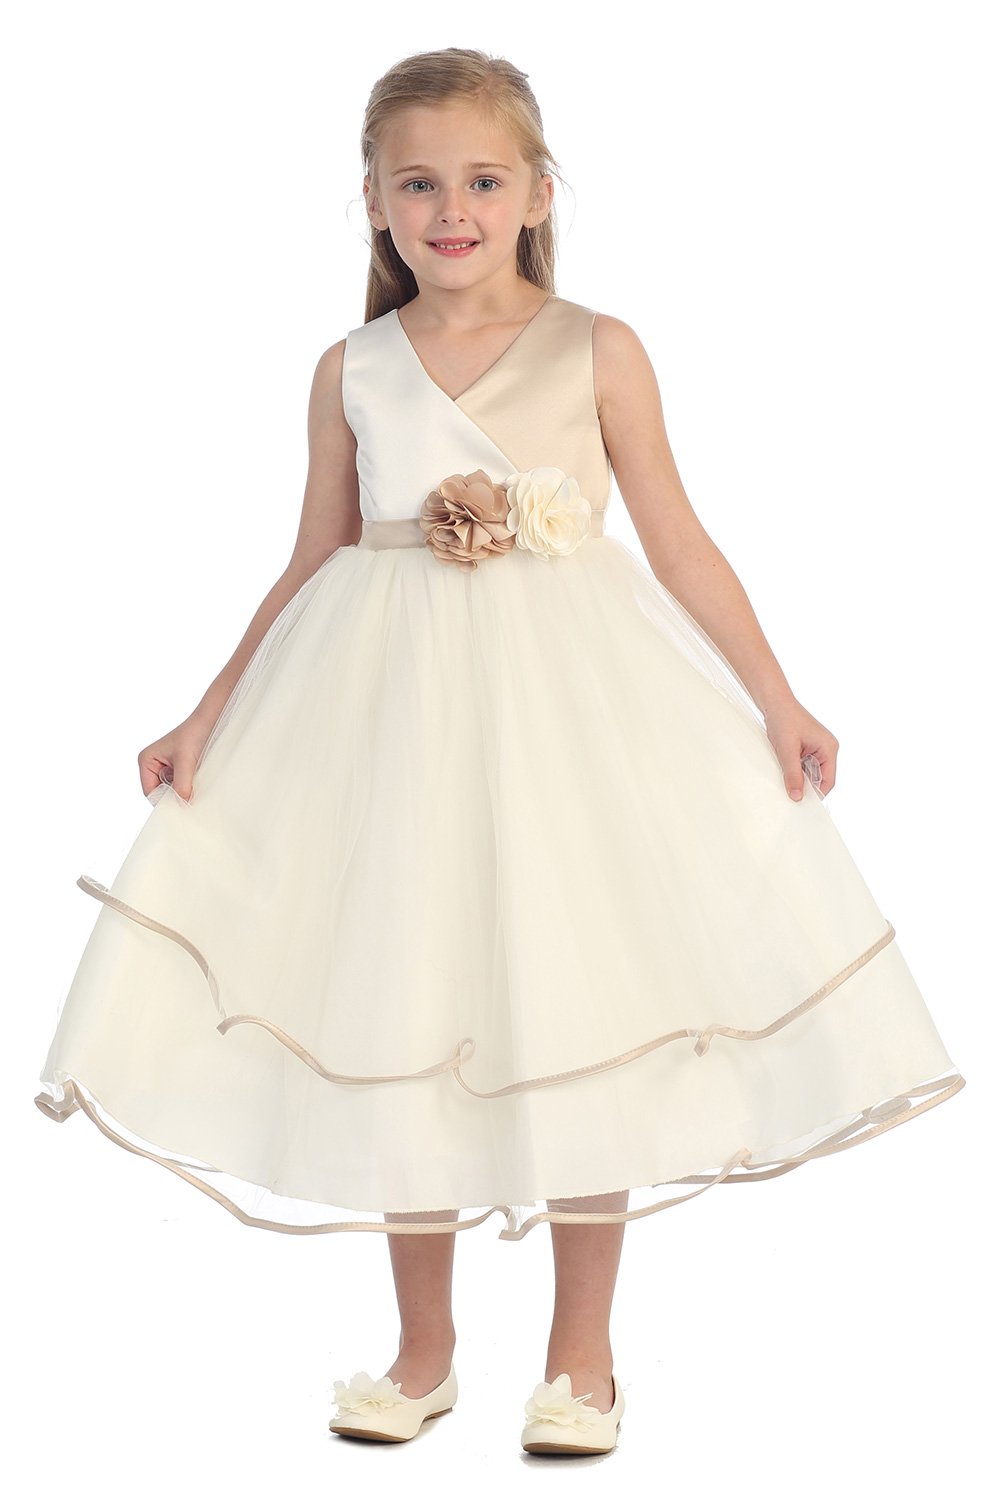 A-Line First Communion Dresses for Girls Mid-Calf Flower Girls Dresses For Wedding Gowns Sleeveless Mother Daughter Dresses a line first communion dresses for girls mid calf flower girls dresses for wedding gowns sleeveless mother daughter dresses